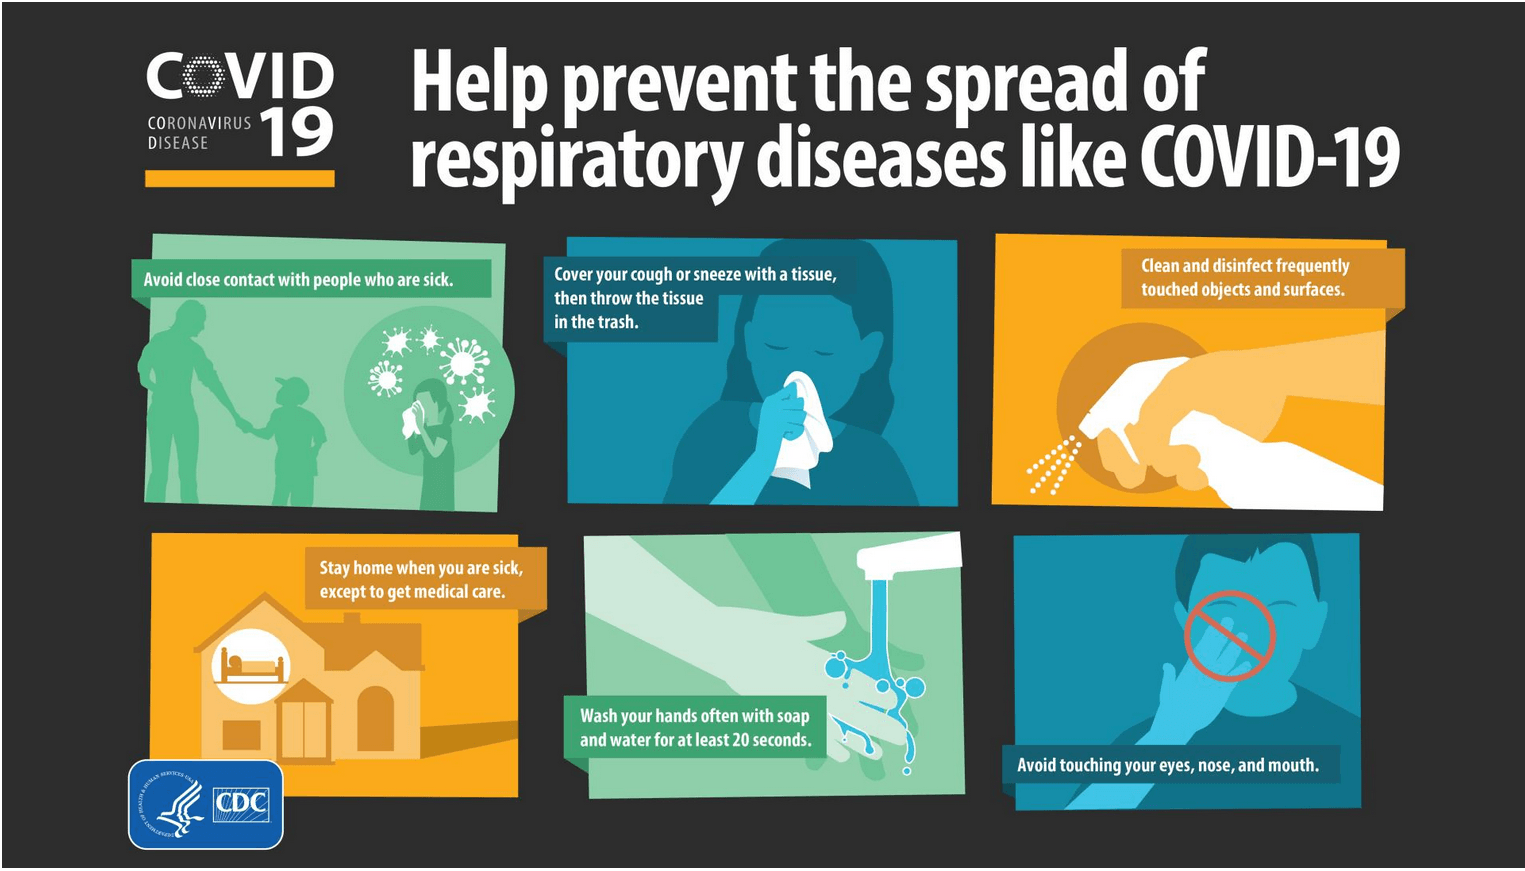 Help prevent the spread of respiratory diseases like COVID-19 graphic